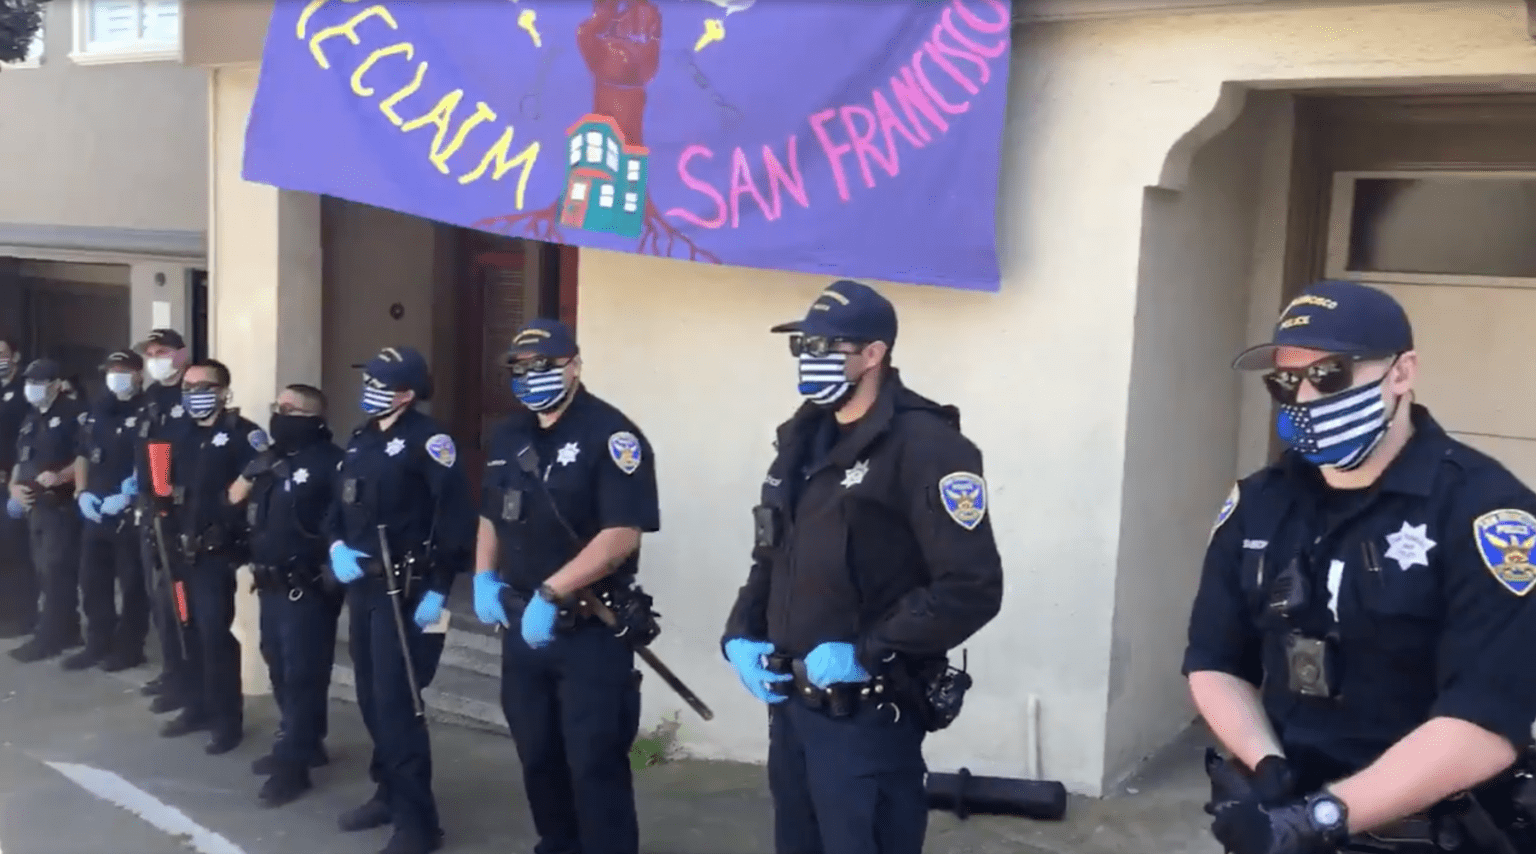 San Francisco Police Chief says officers can't wear thin blue line masks